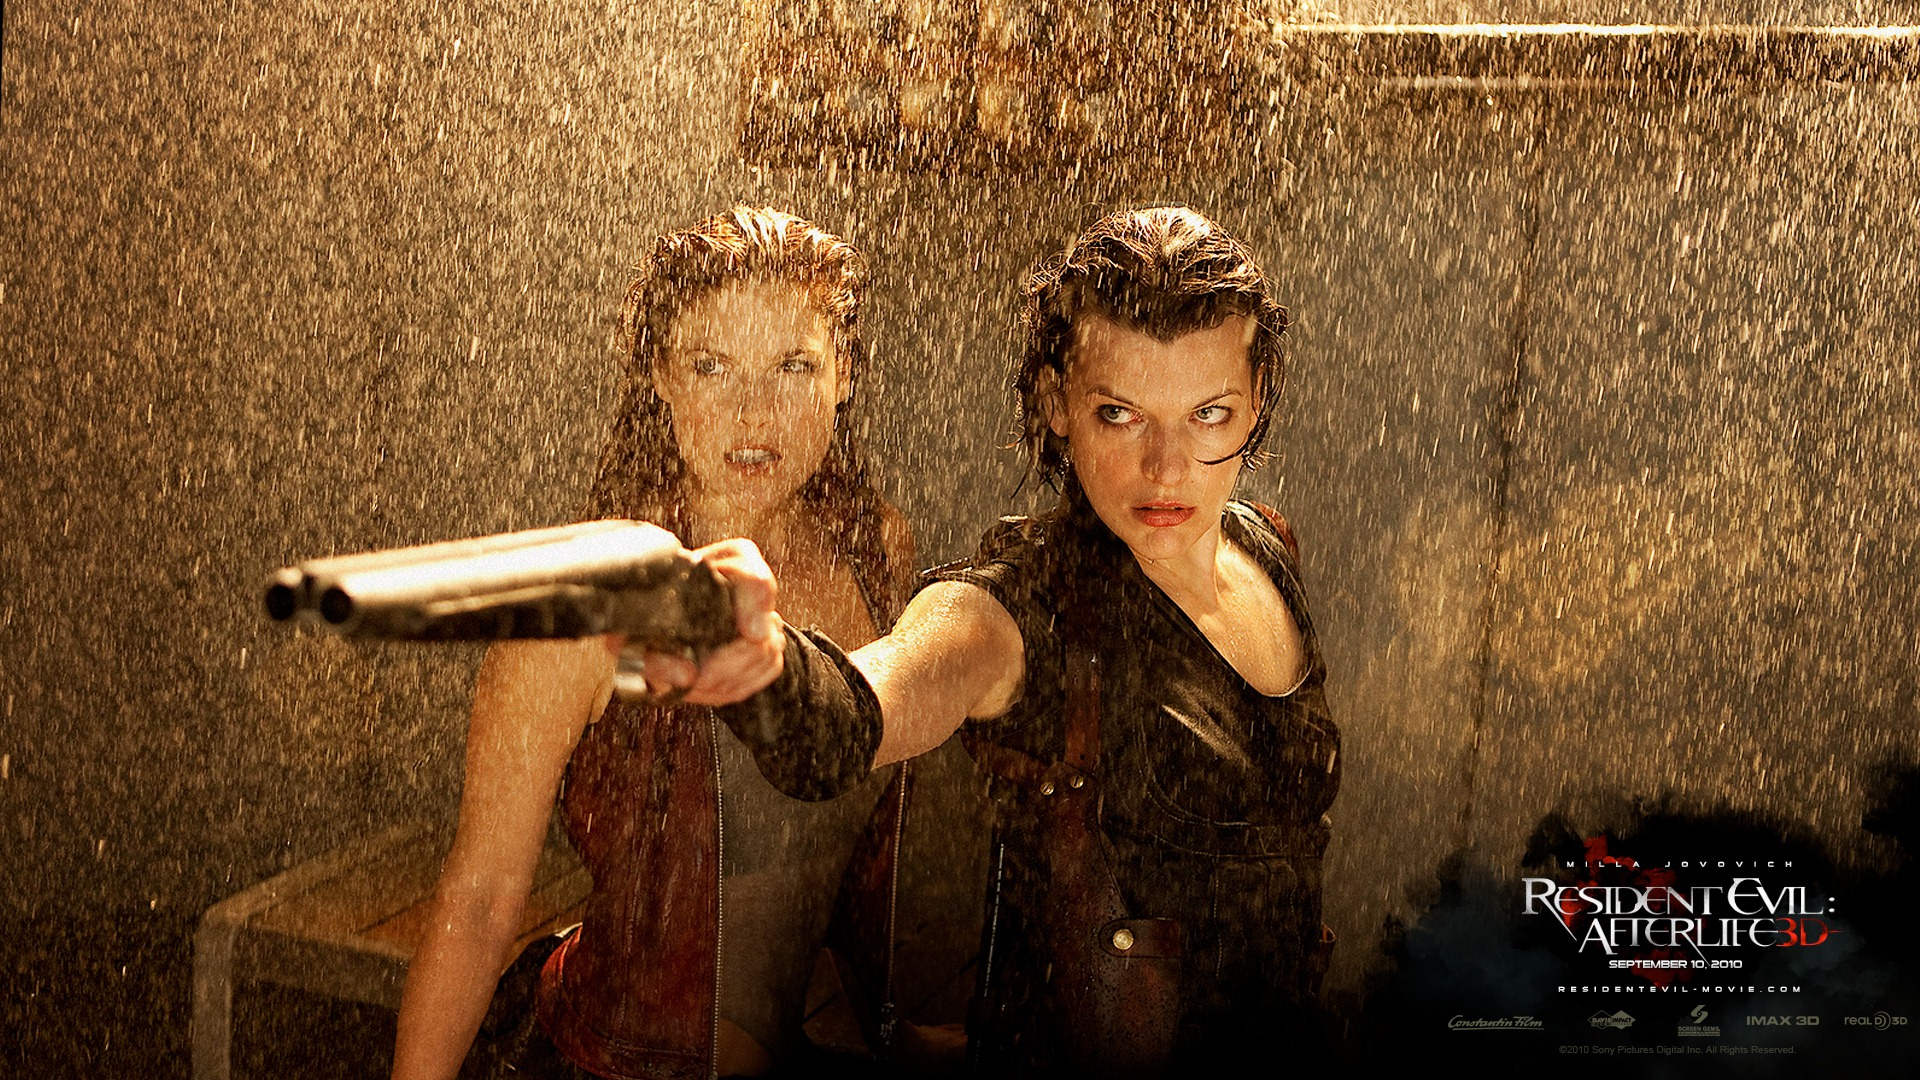 Films - Resident Evil: Afterlife  Wallpaper